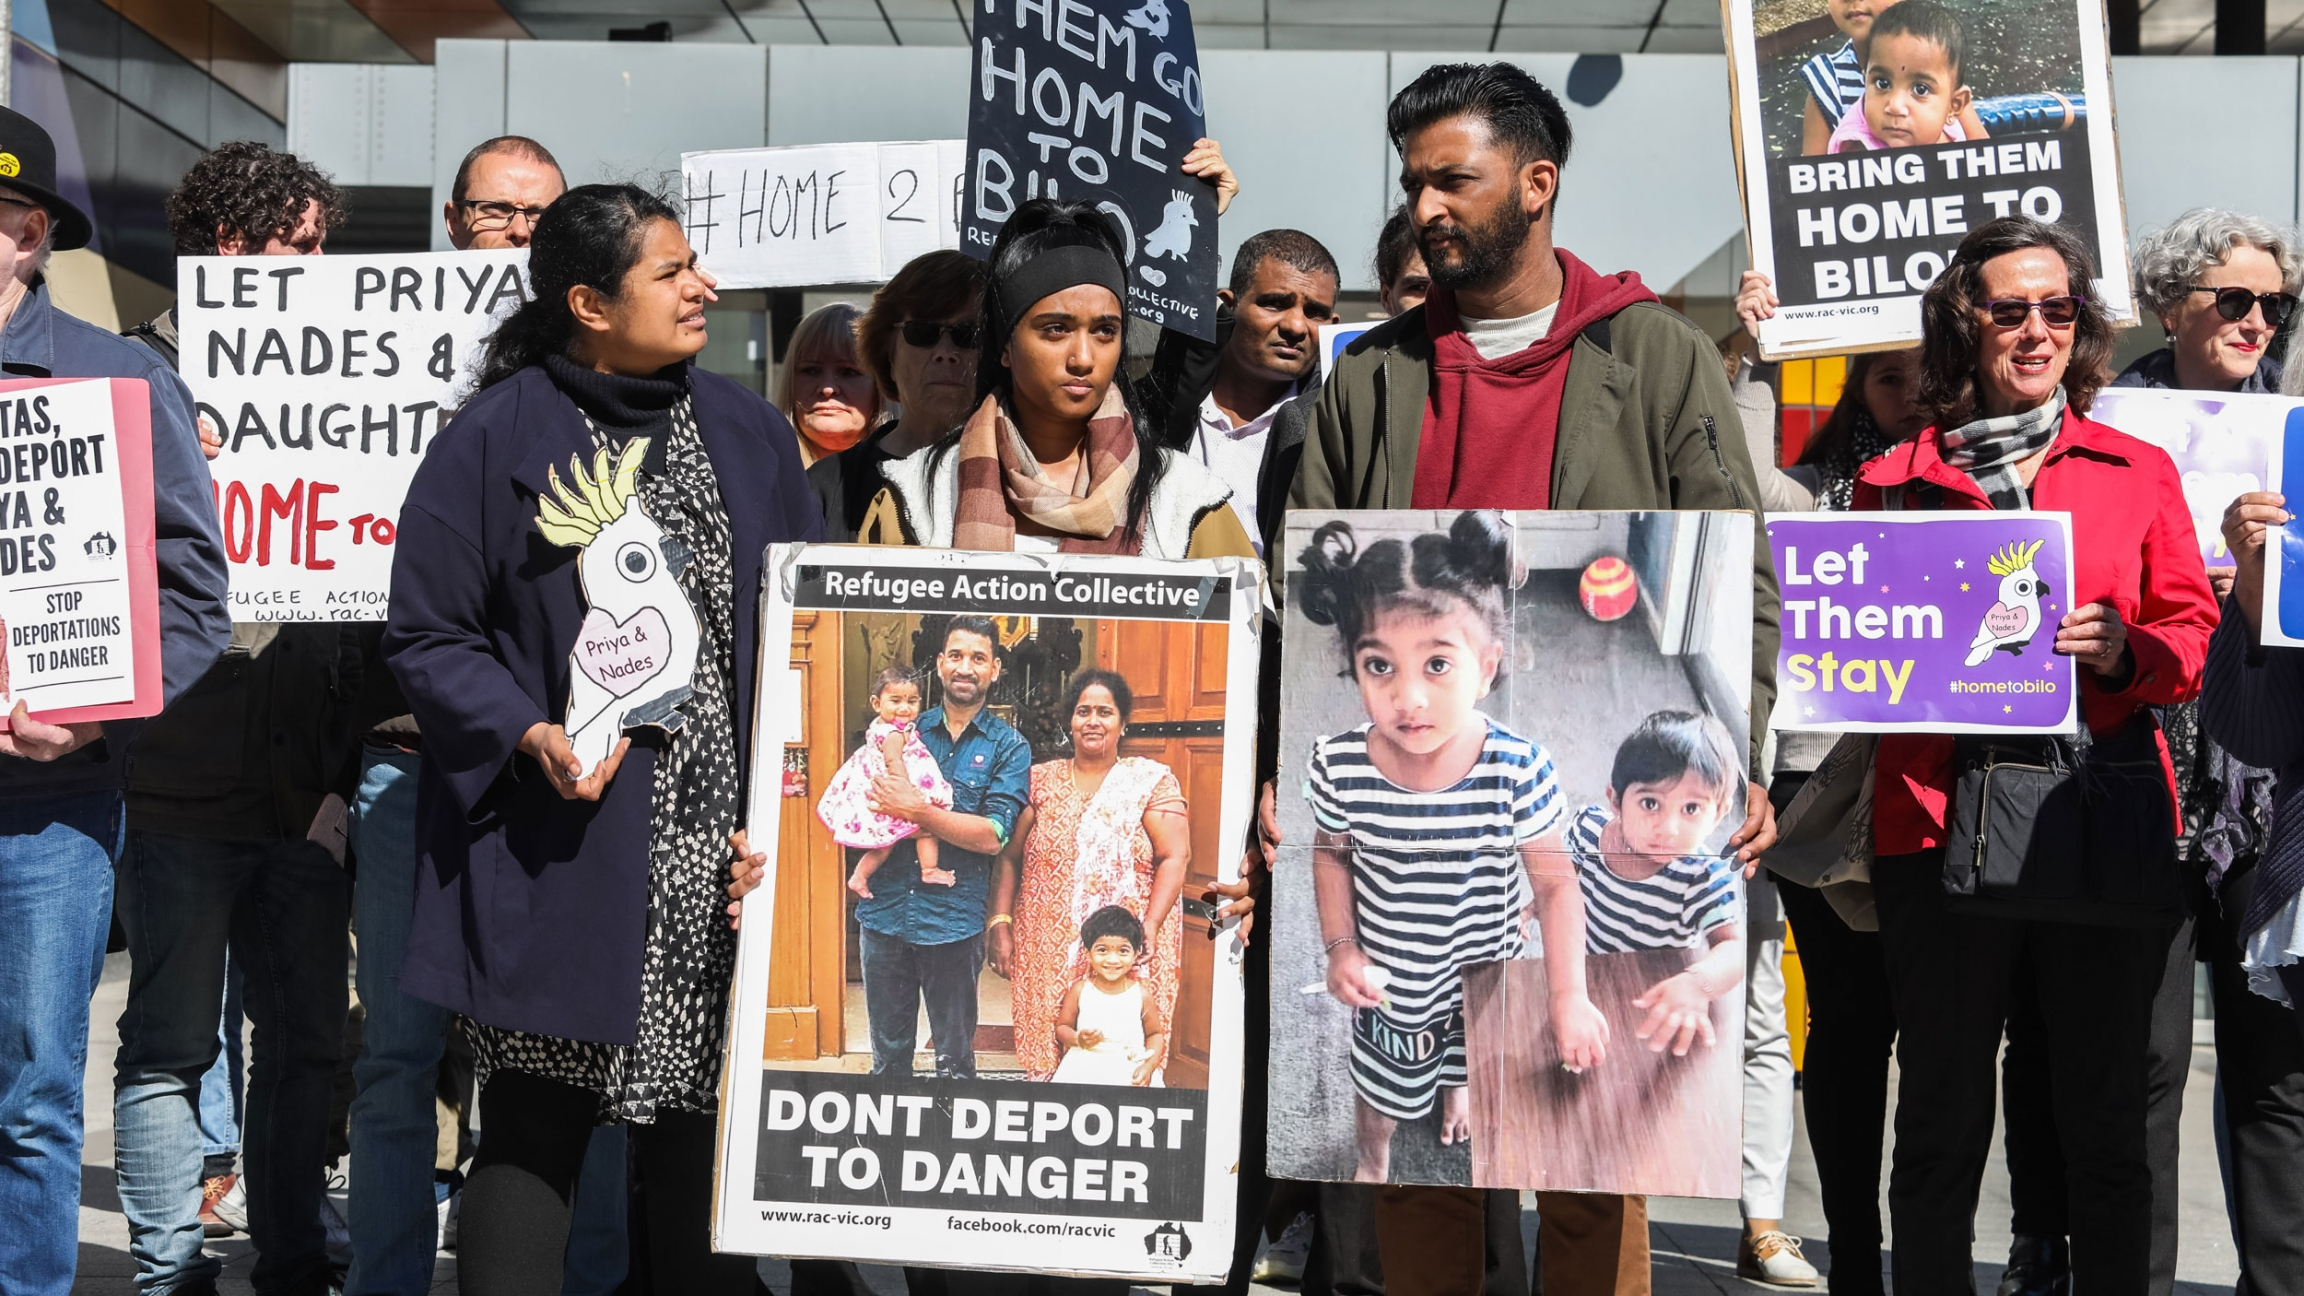 A group of protesters are shown holding placards with pictures of a Tamil family that includes the father, mother and their two small children.